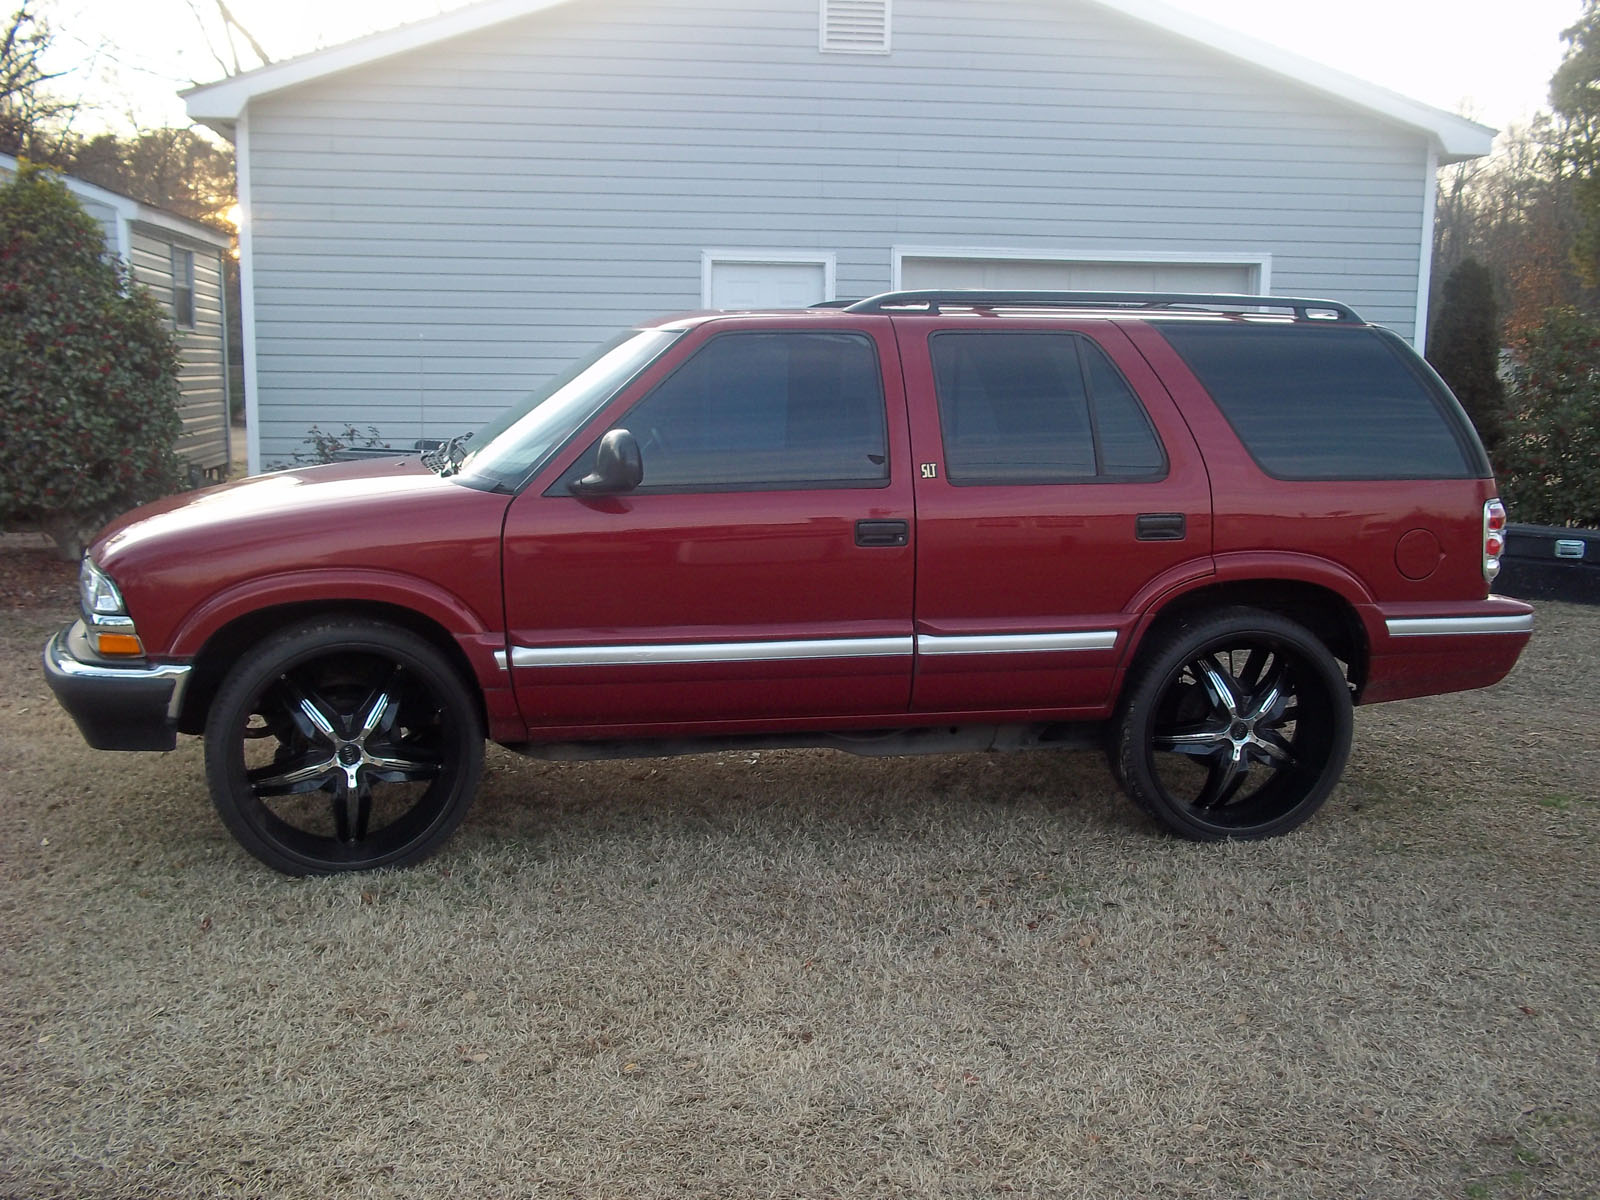 1988 GMC Jimmy - Pictures - CarGurus